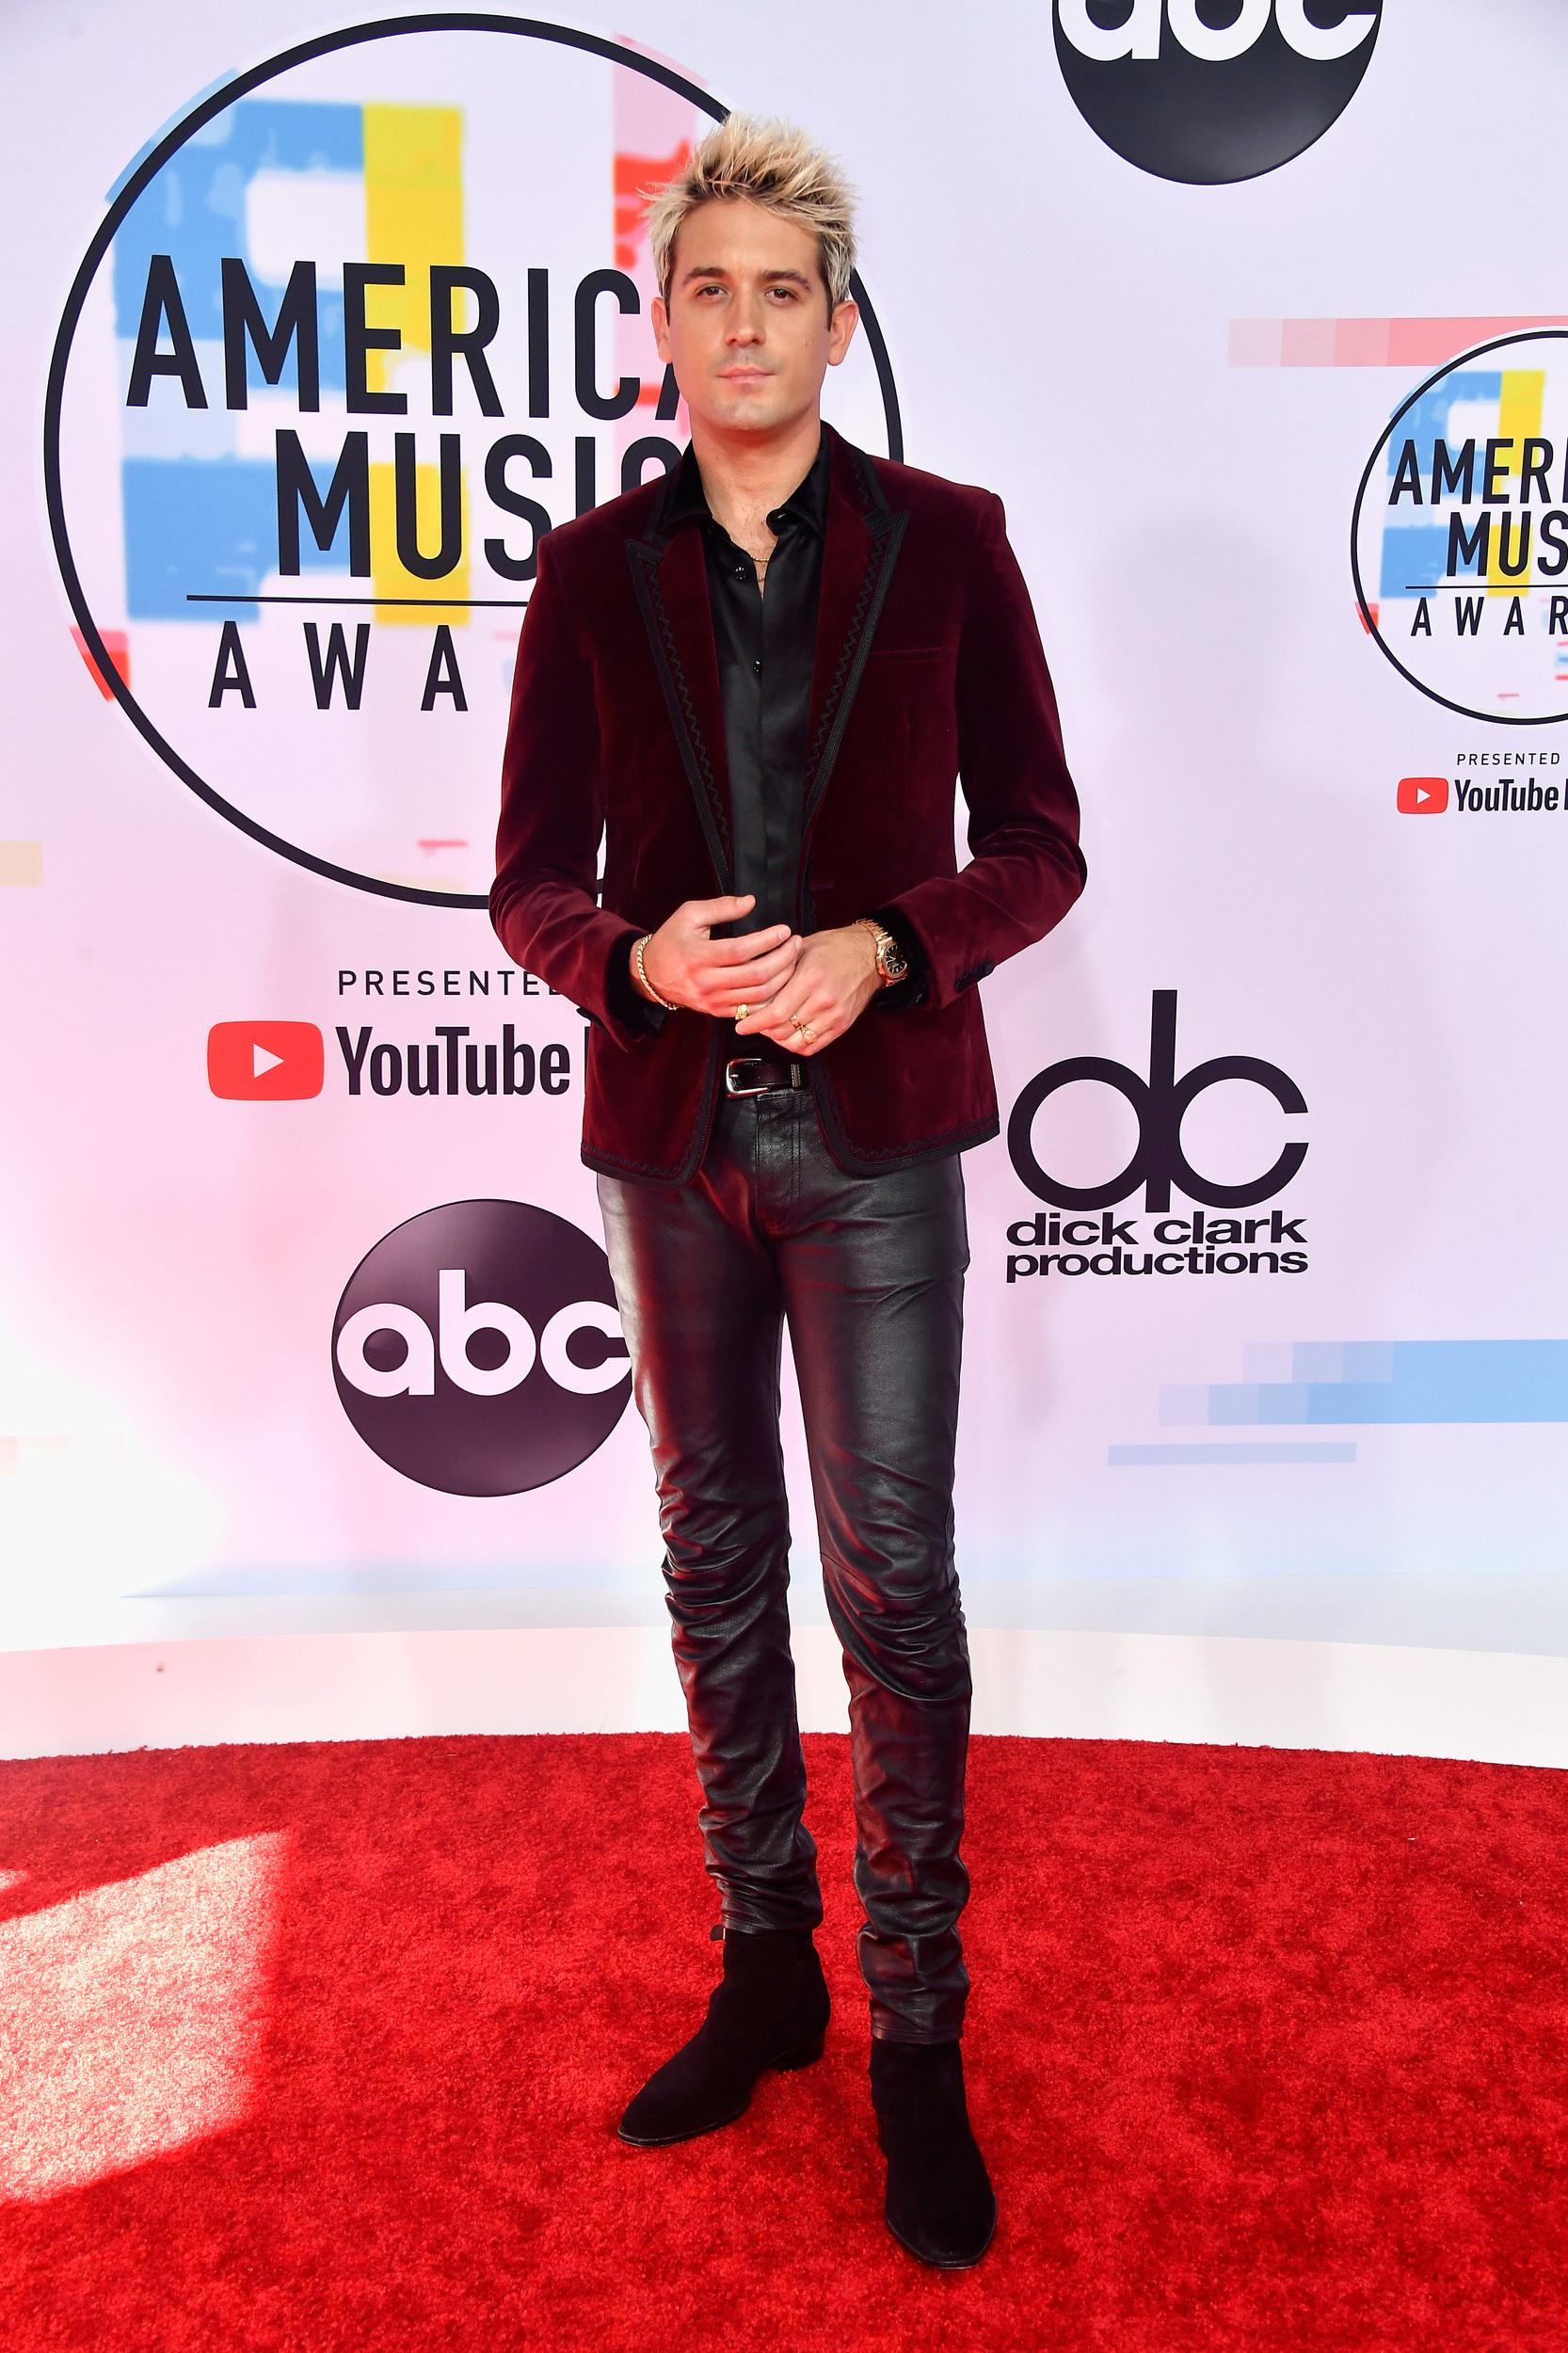 LOS ANGELES, CA - OCTOBER 09:  G-Eazy attends the 2018 American Music Awards at Microsoft Theater on October 9, 2018 in Los Angeles, California.  (Photo by Frazer Harrison/Getty Images)